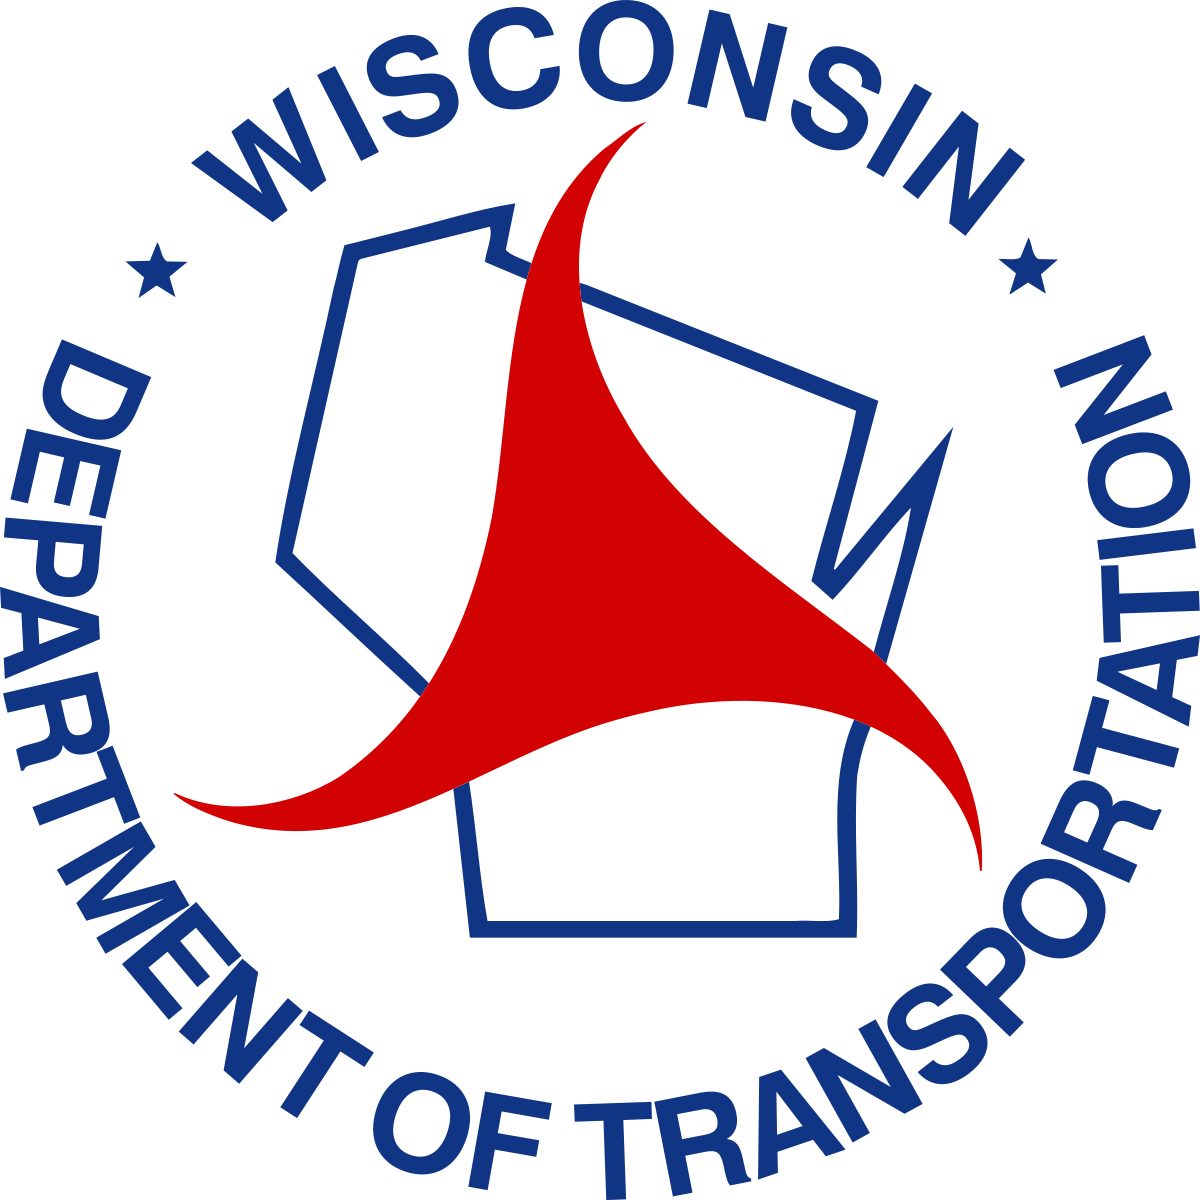 Department clipart sale department. Wisconsin of transportation wikipedia